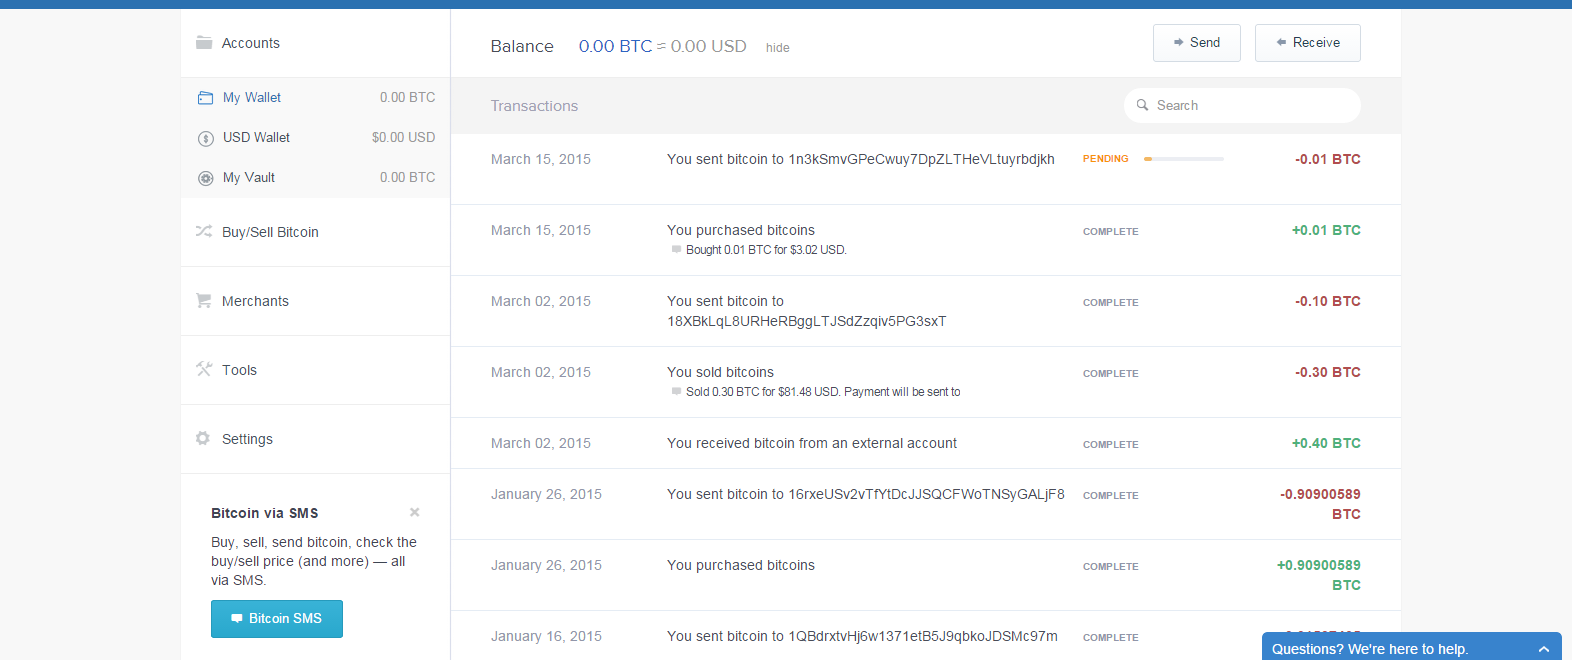 how to buy bitcoin with bank account on coinbase